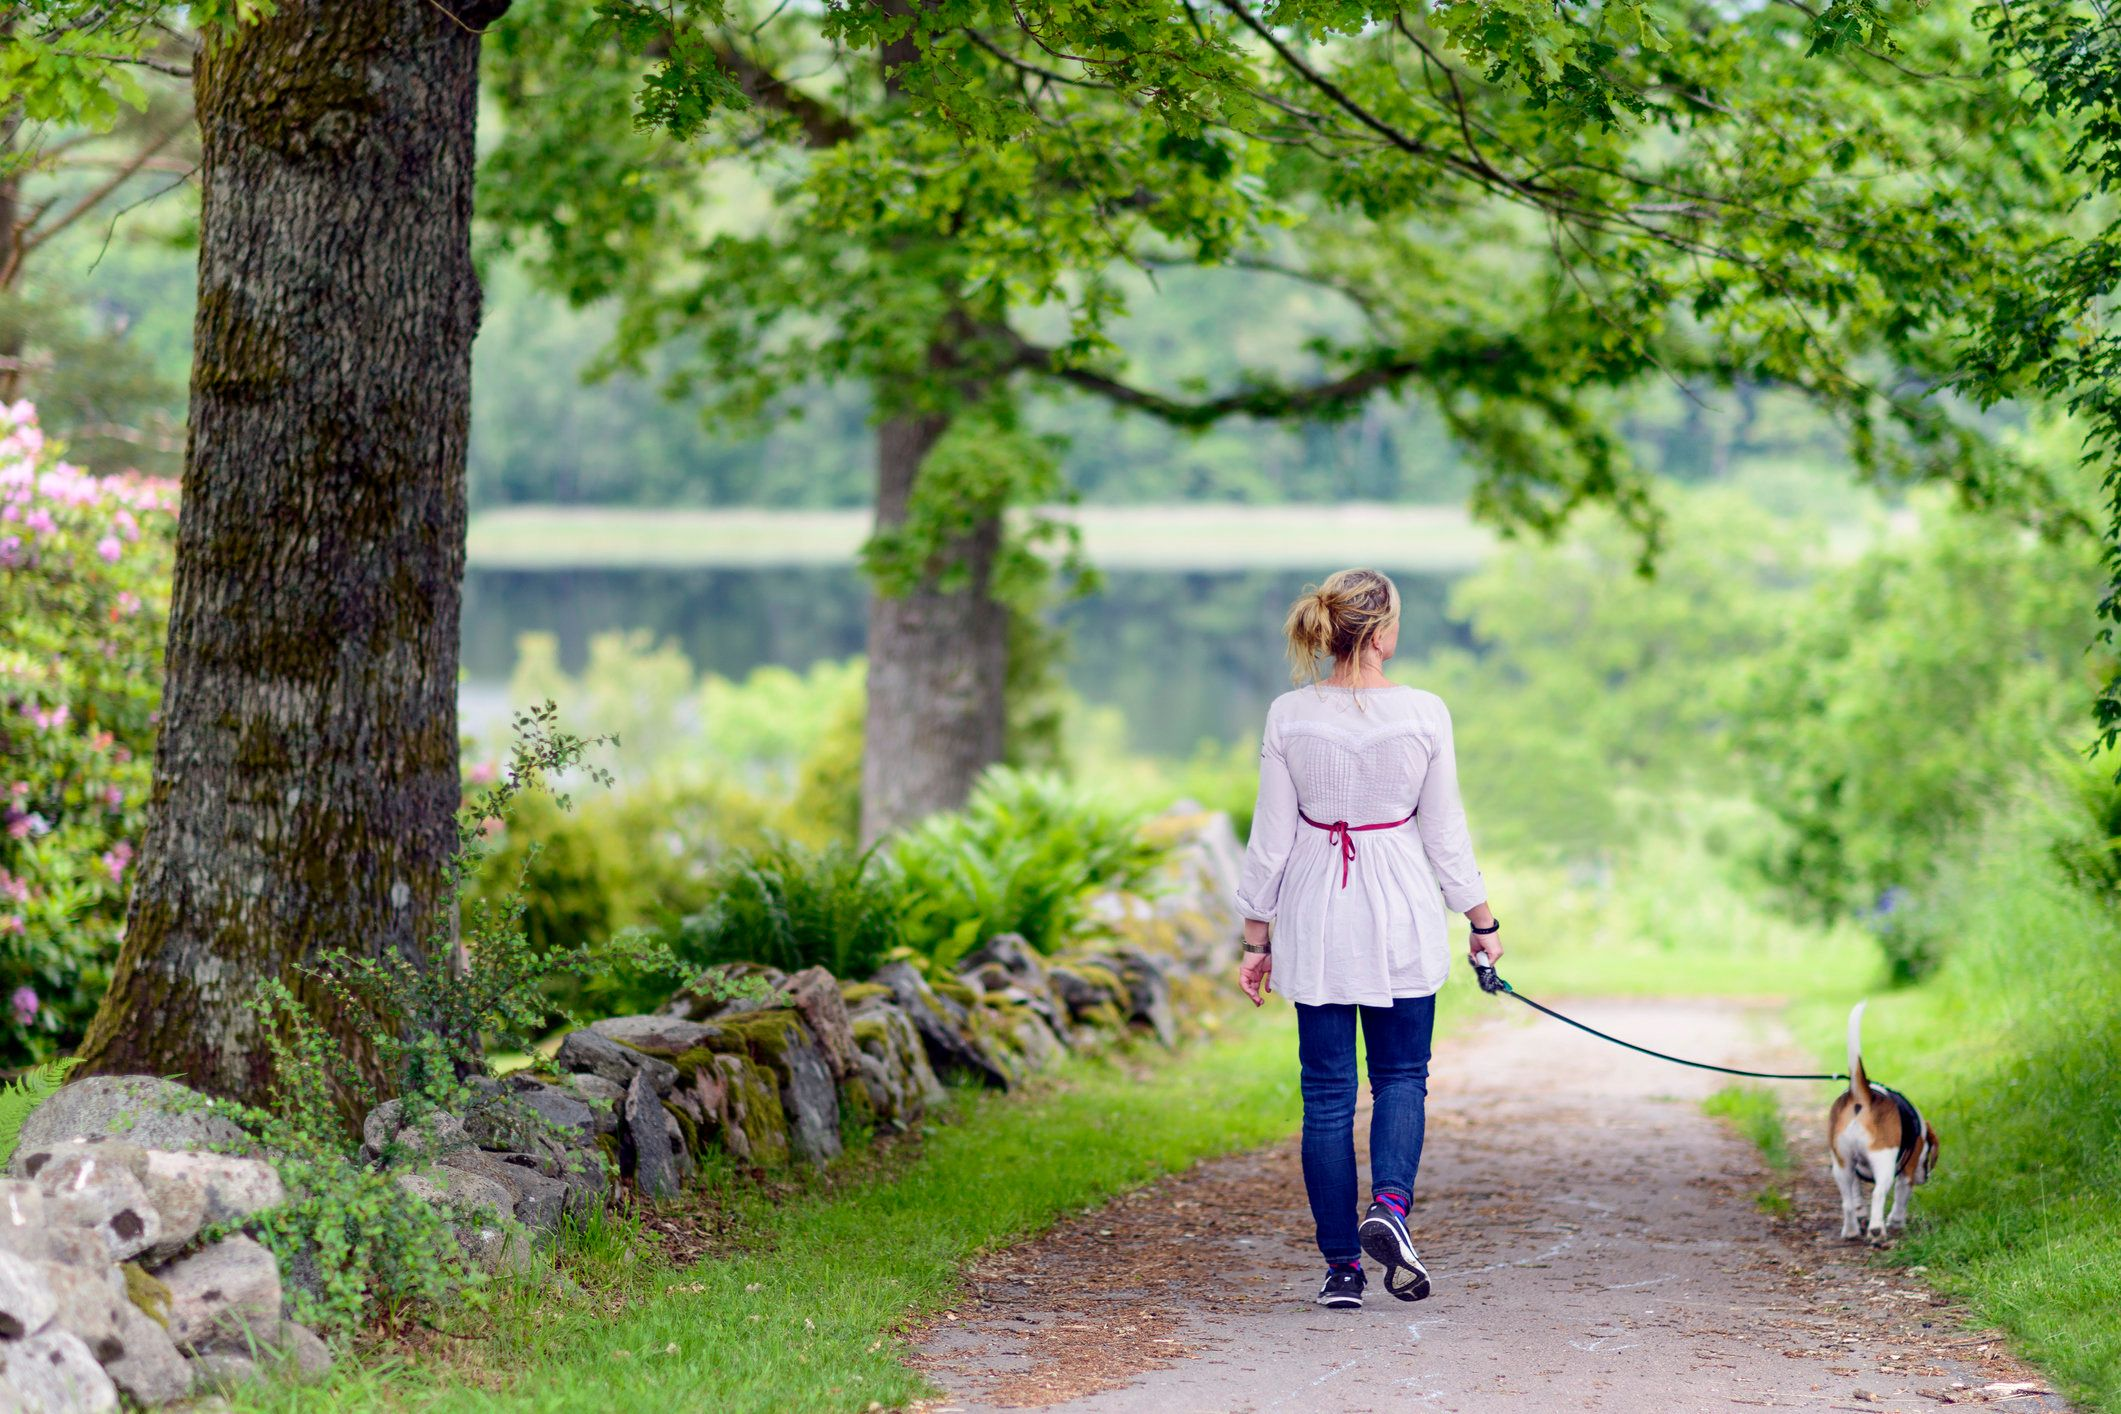 Hour Of Walking After Work Cancels Out Impact Of Sitting All Day, Study